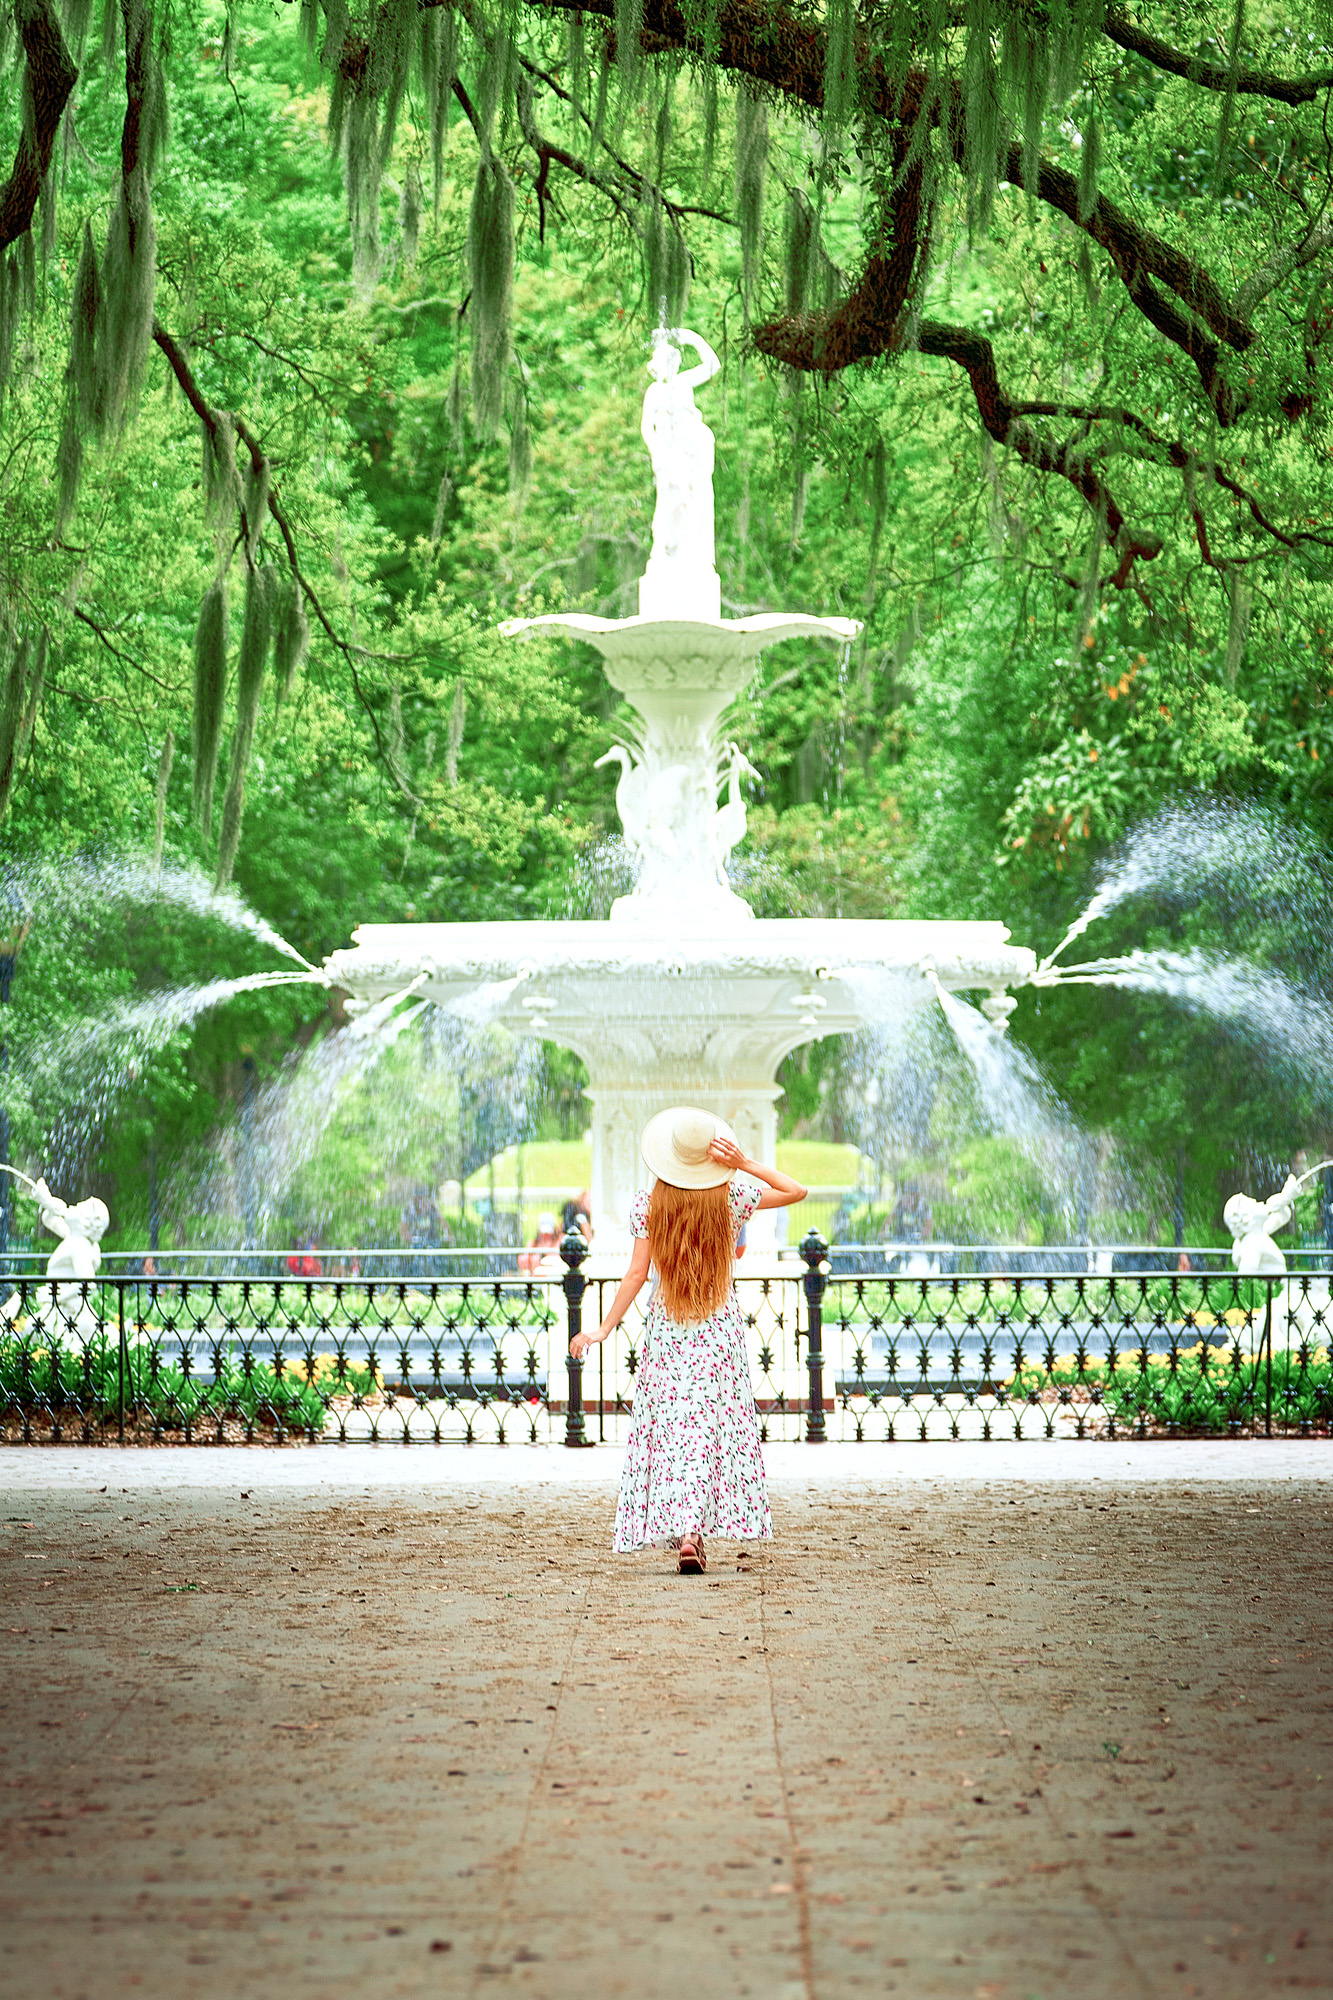 A woman in a white long sun dress with long hair and a white sun hat standing in front of the famous Forsyth fountain. Behind it are tons of trees covered in spanish moss. It is a must see for 3 days in Savannah